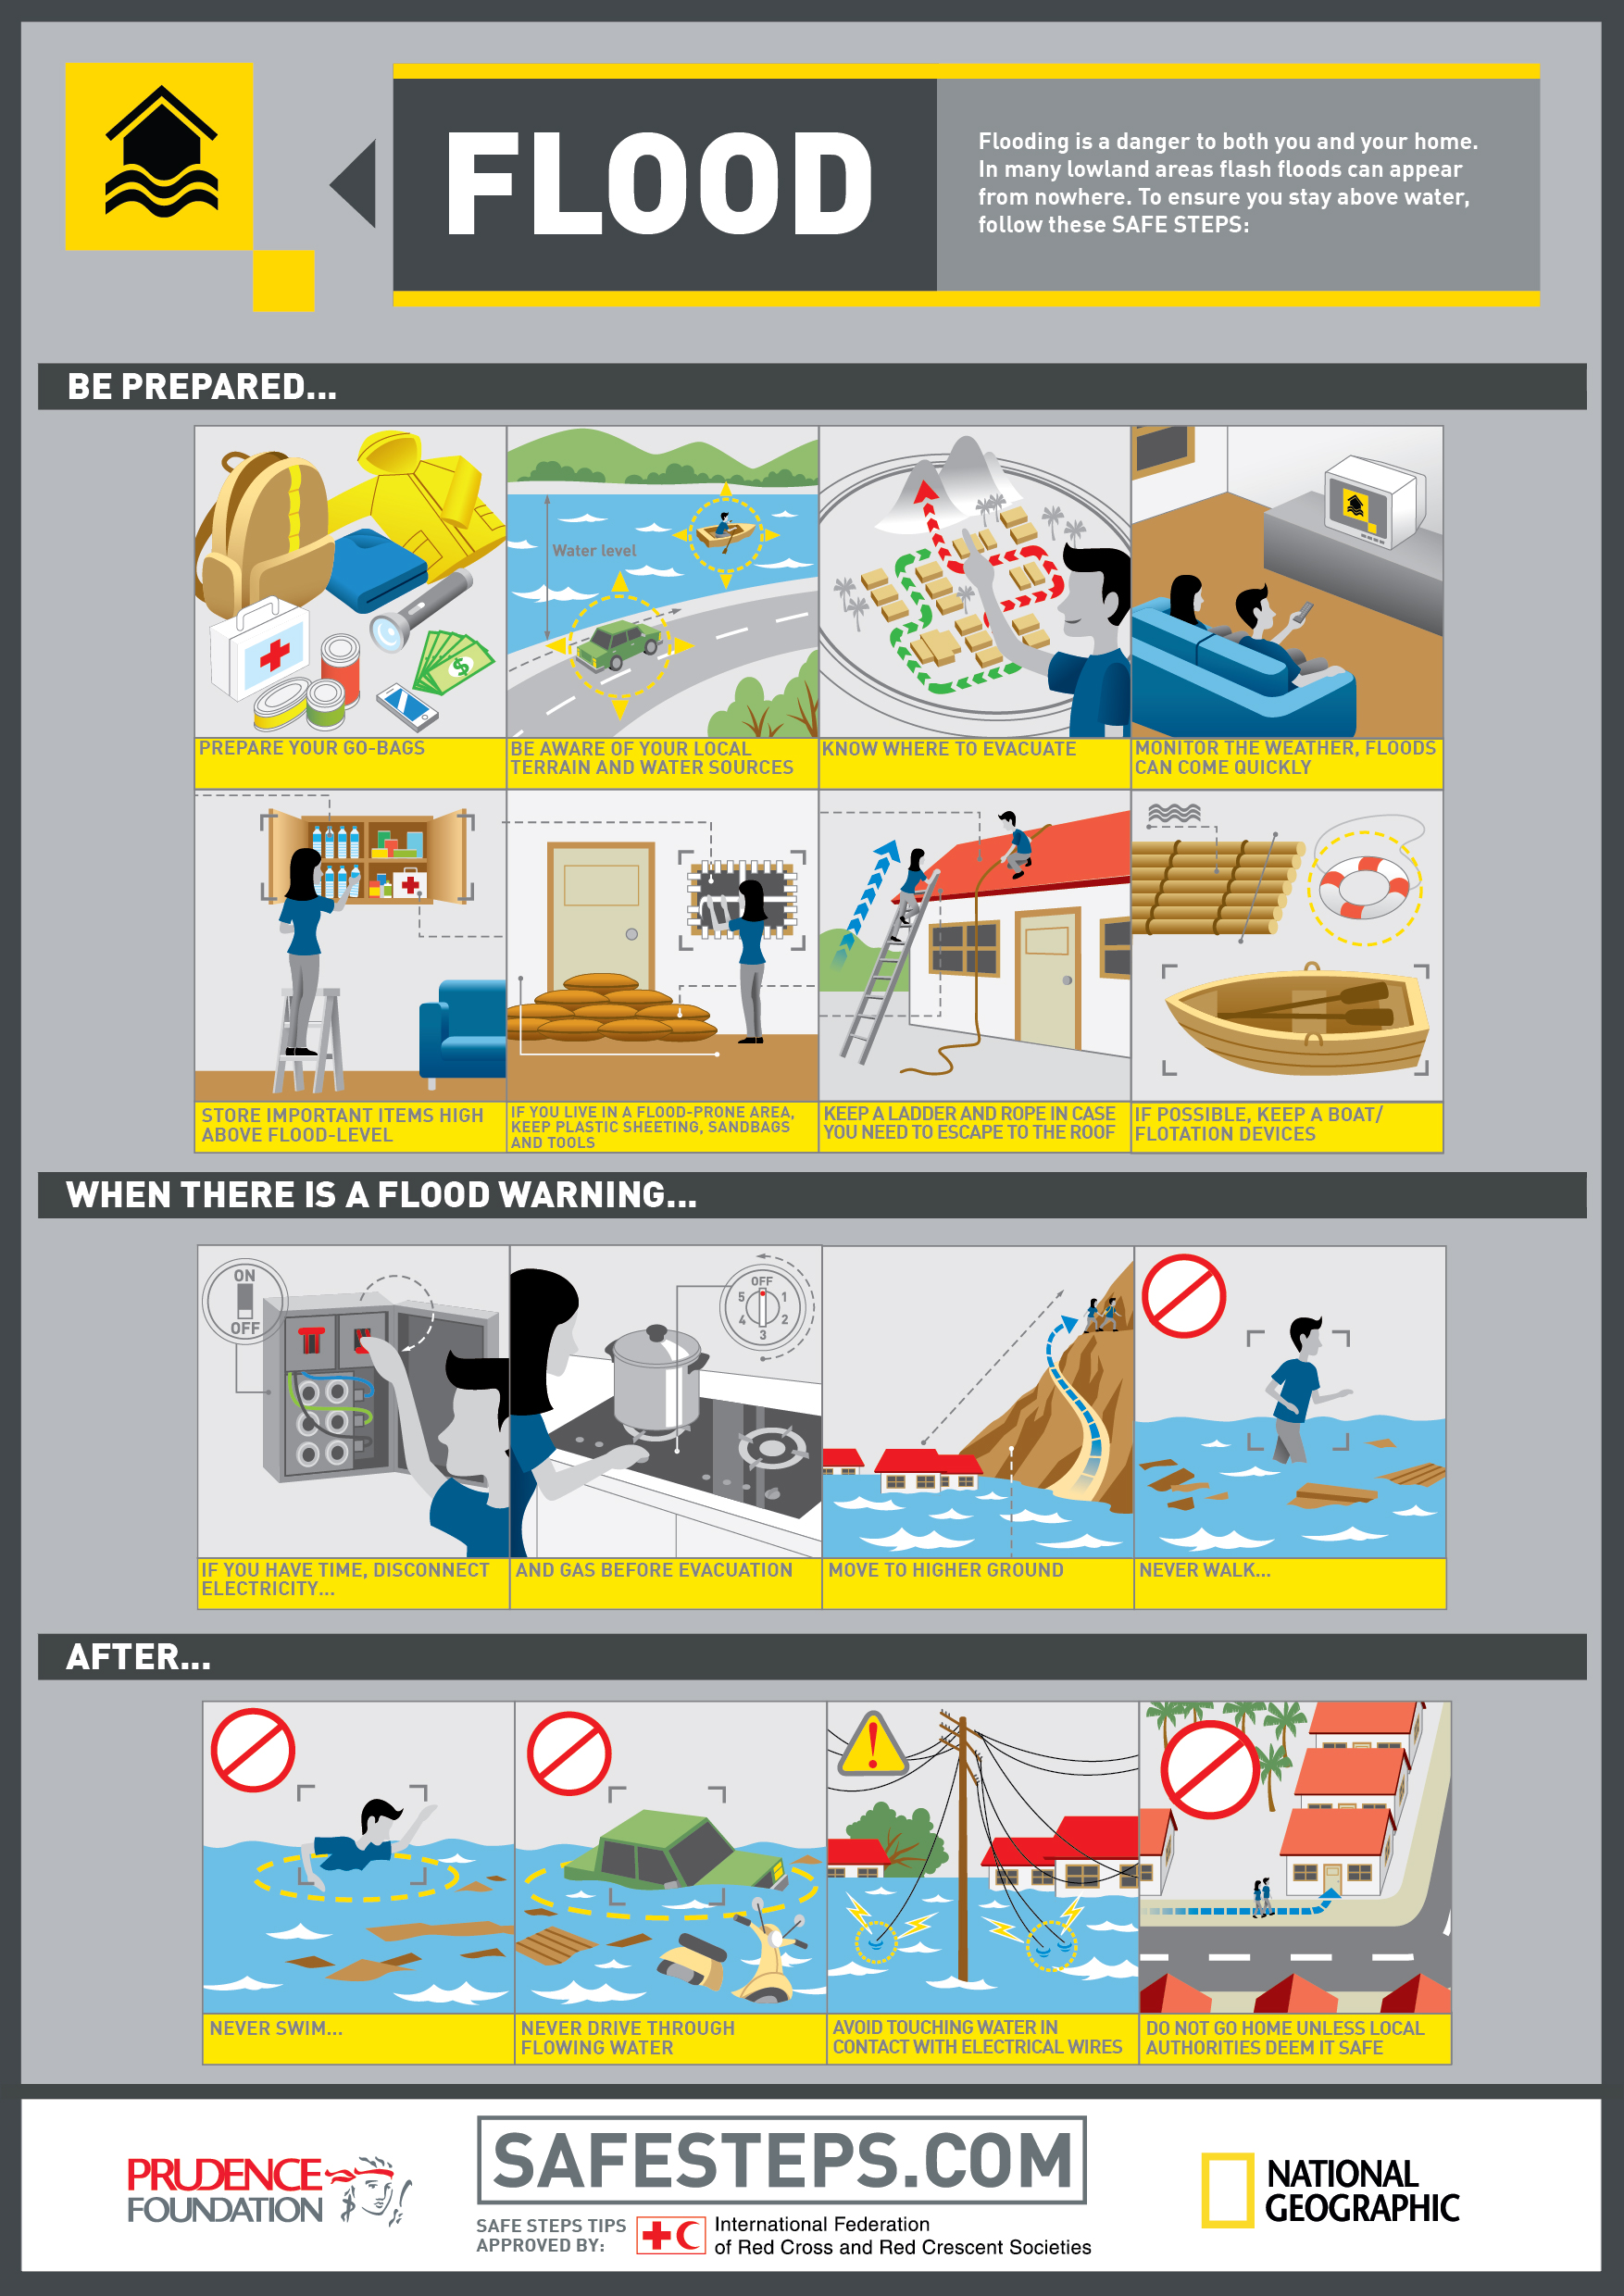 How To Get Food During Flood